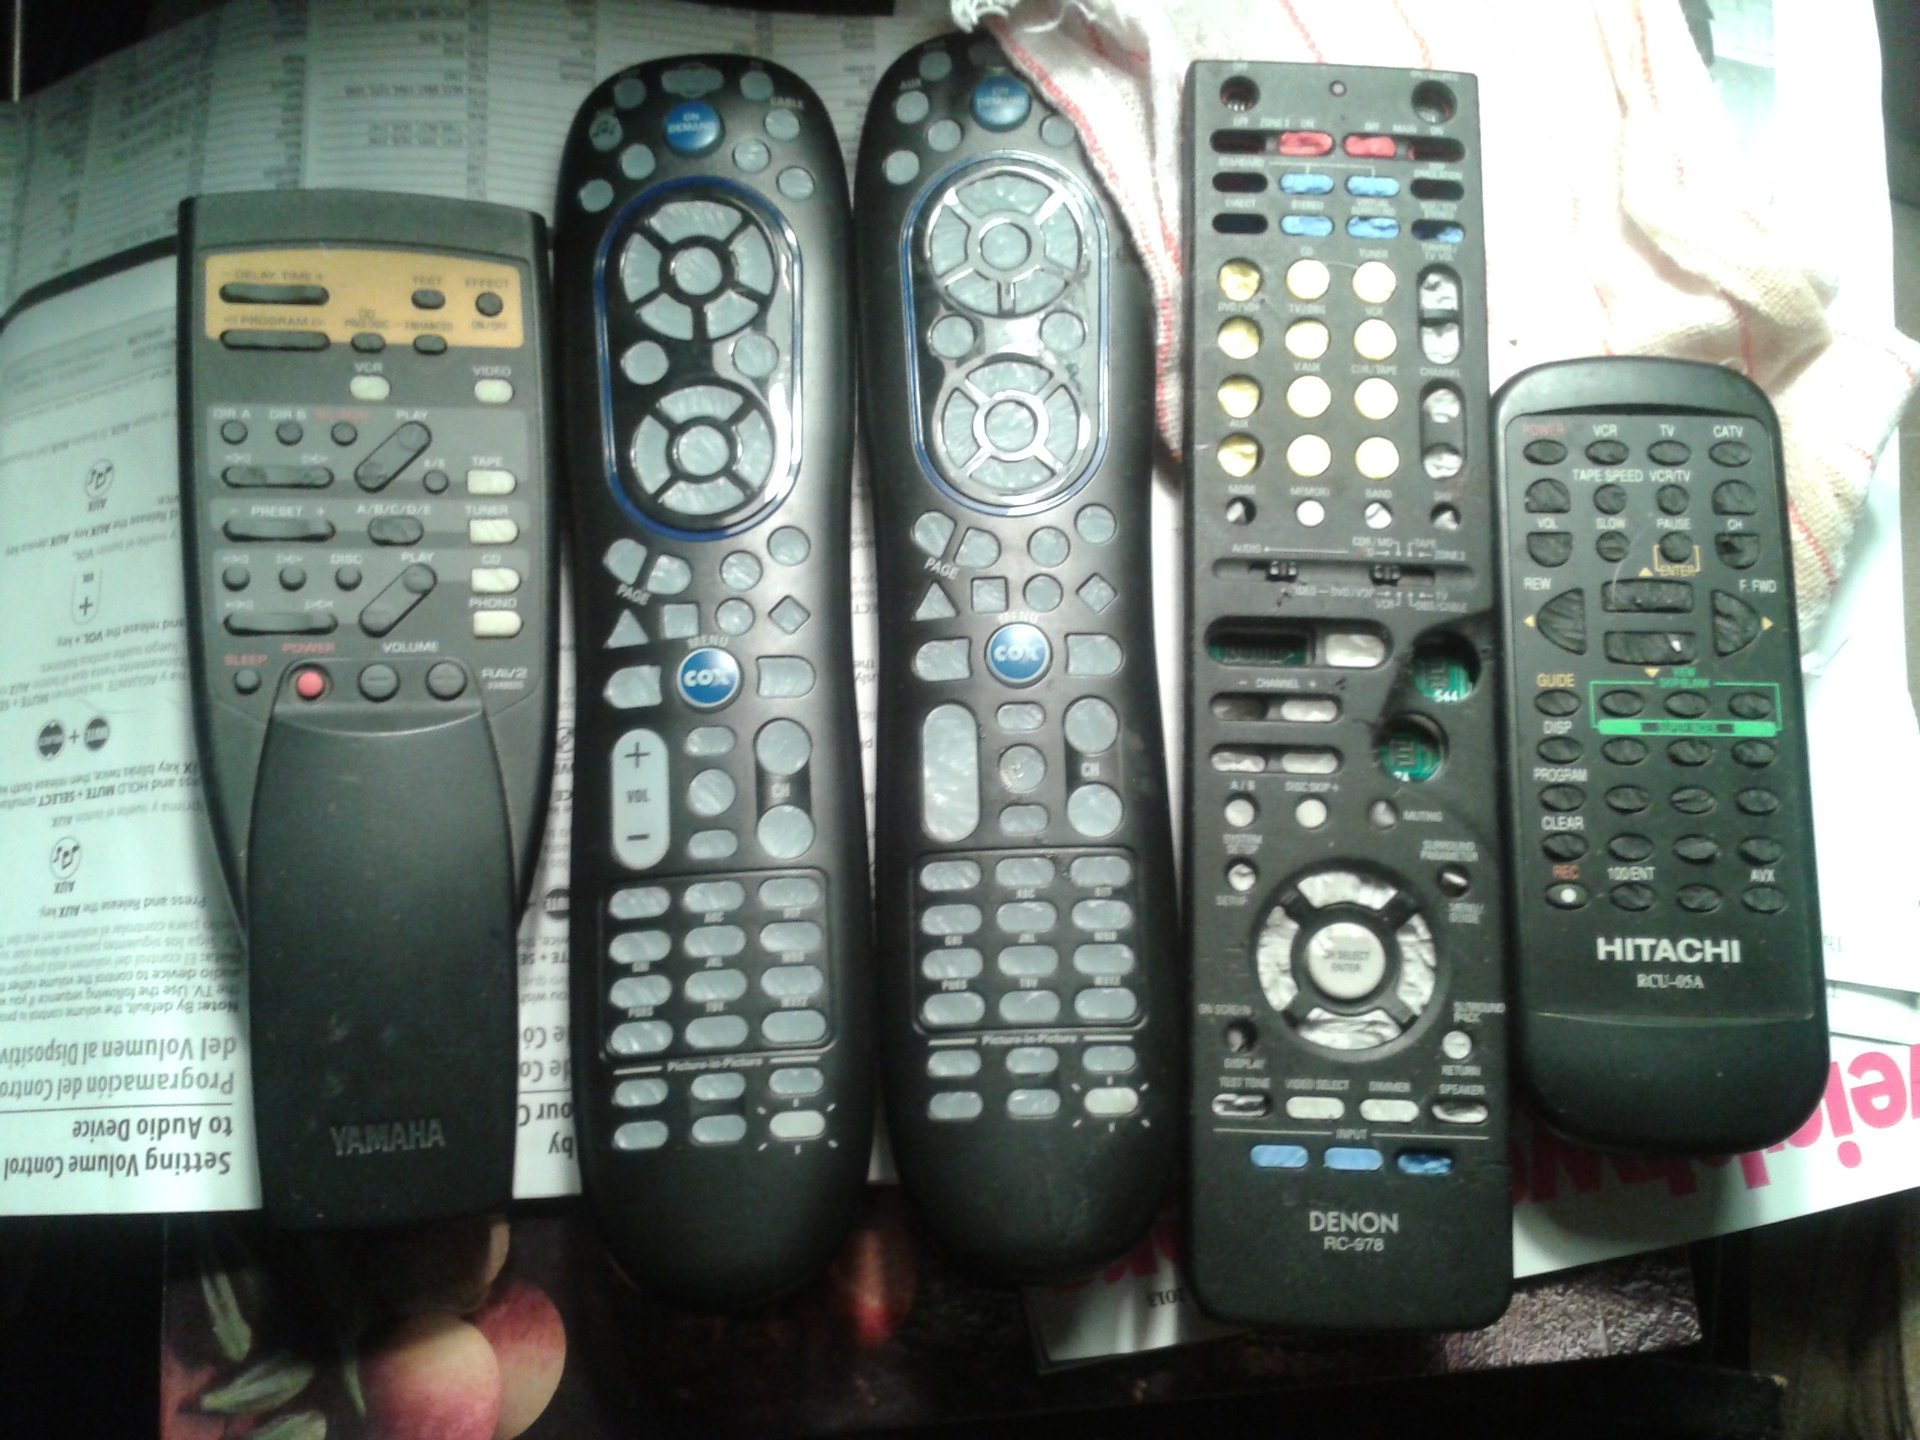 Rat damage to remote controls Mansfield, MA